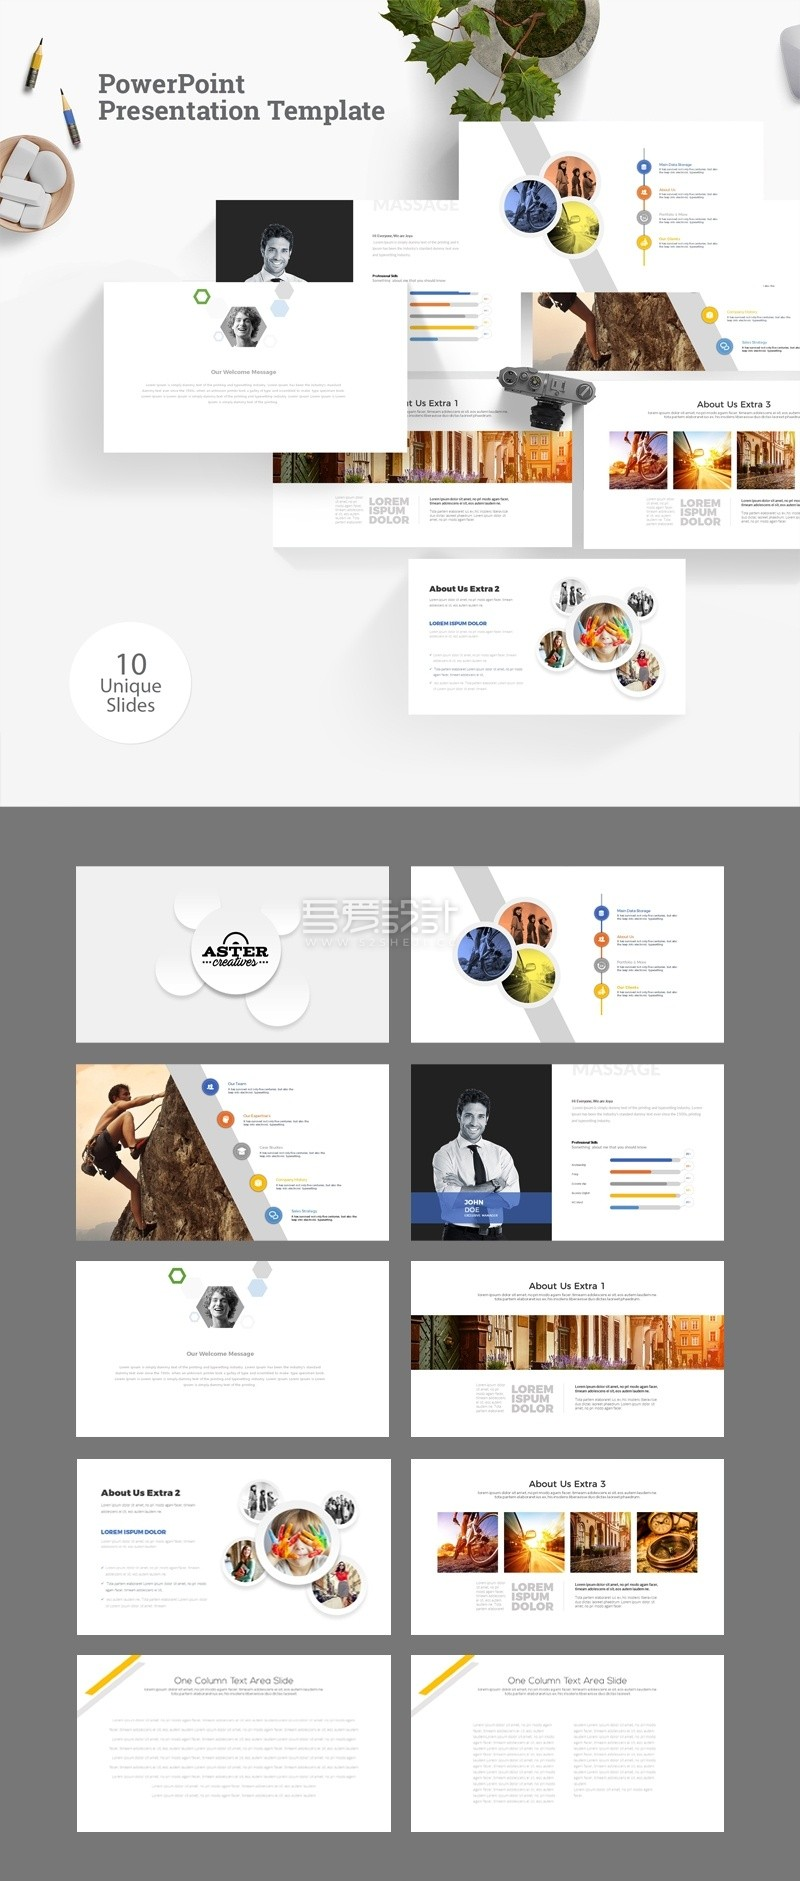 powerpoint-presentation-template-1618-preview_01